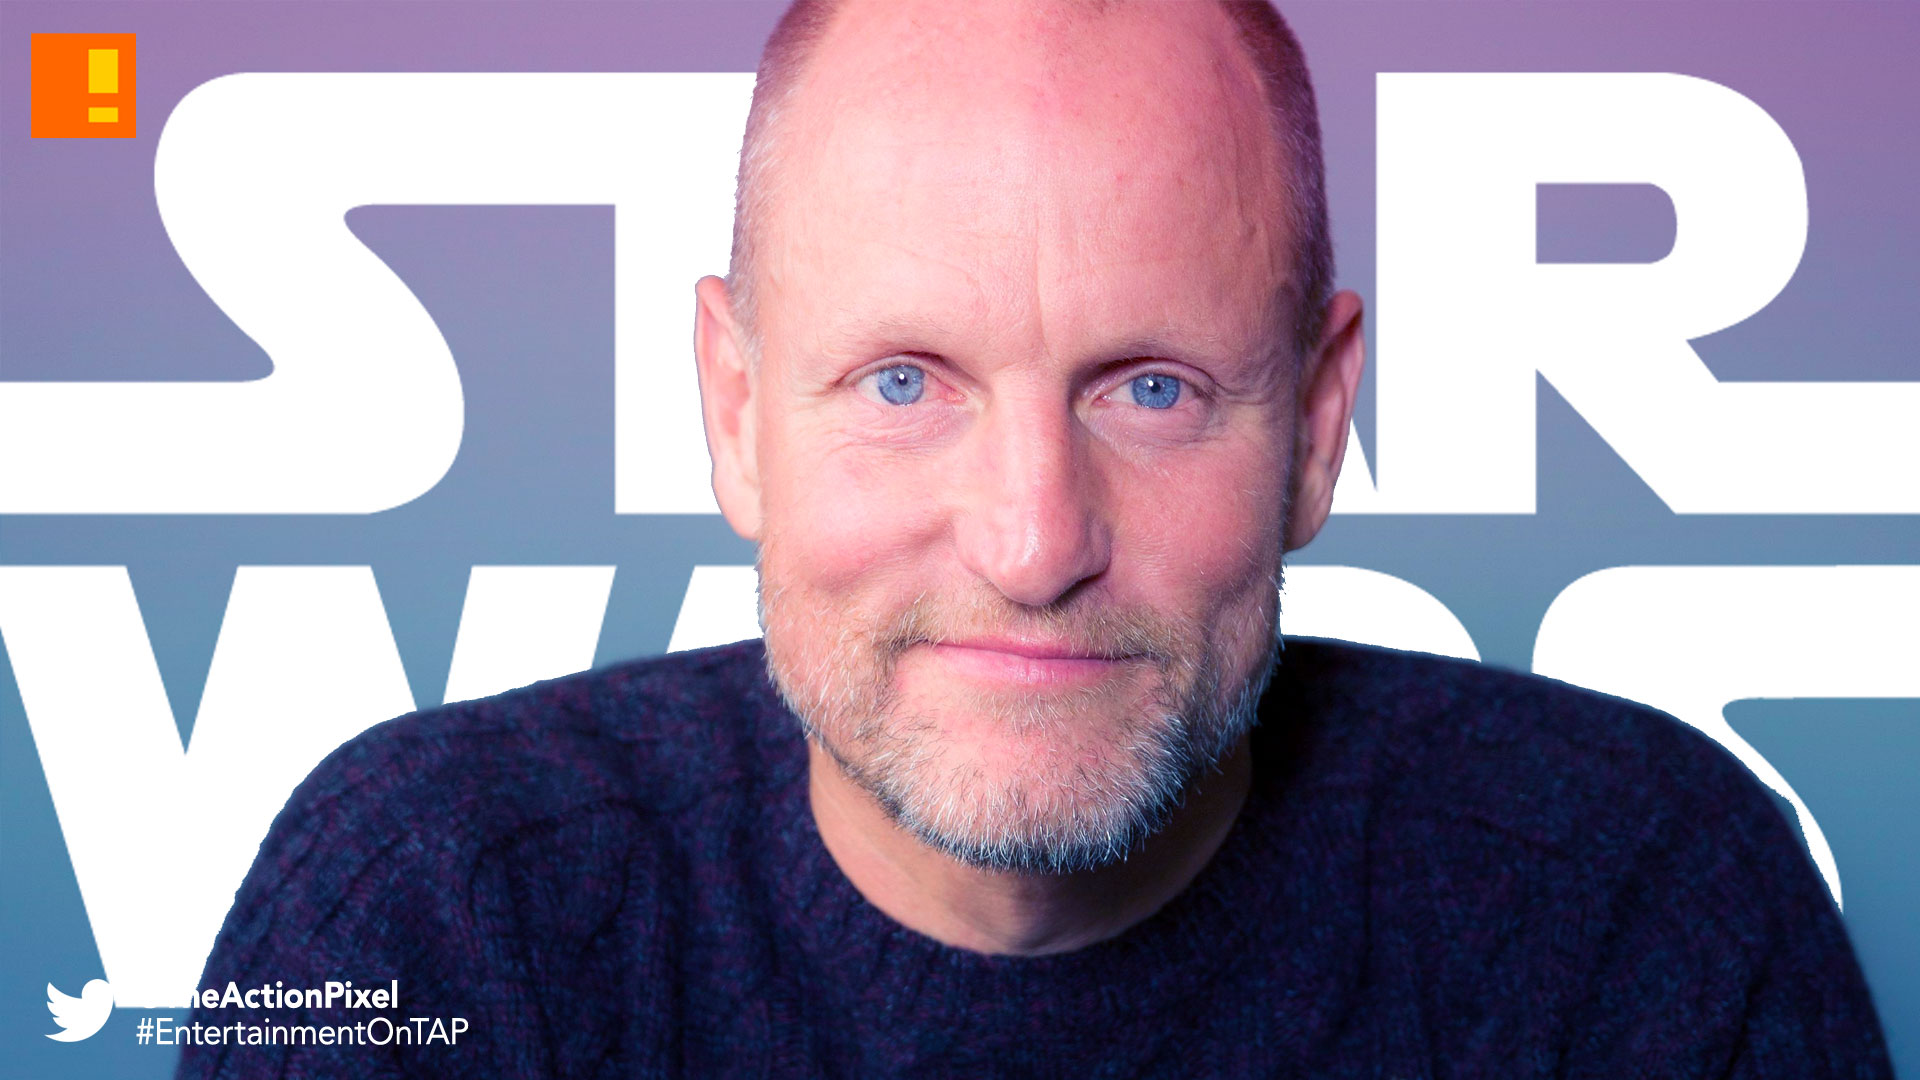 star wars, woody harrelson, the action pixel, hans solo, entertainment on tap, the action pixel, lucasfilm , disney,